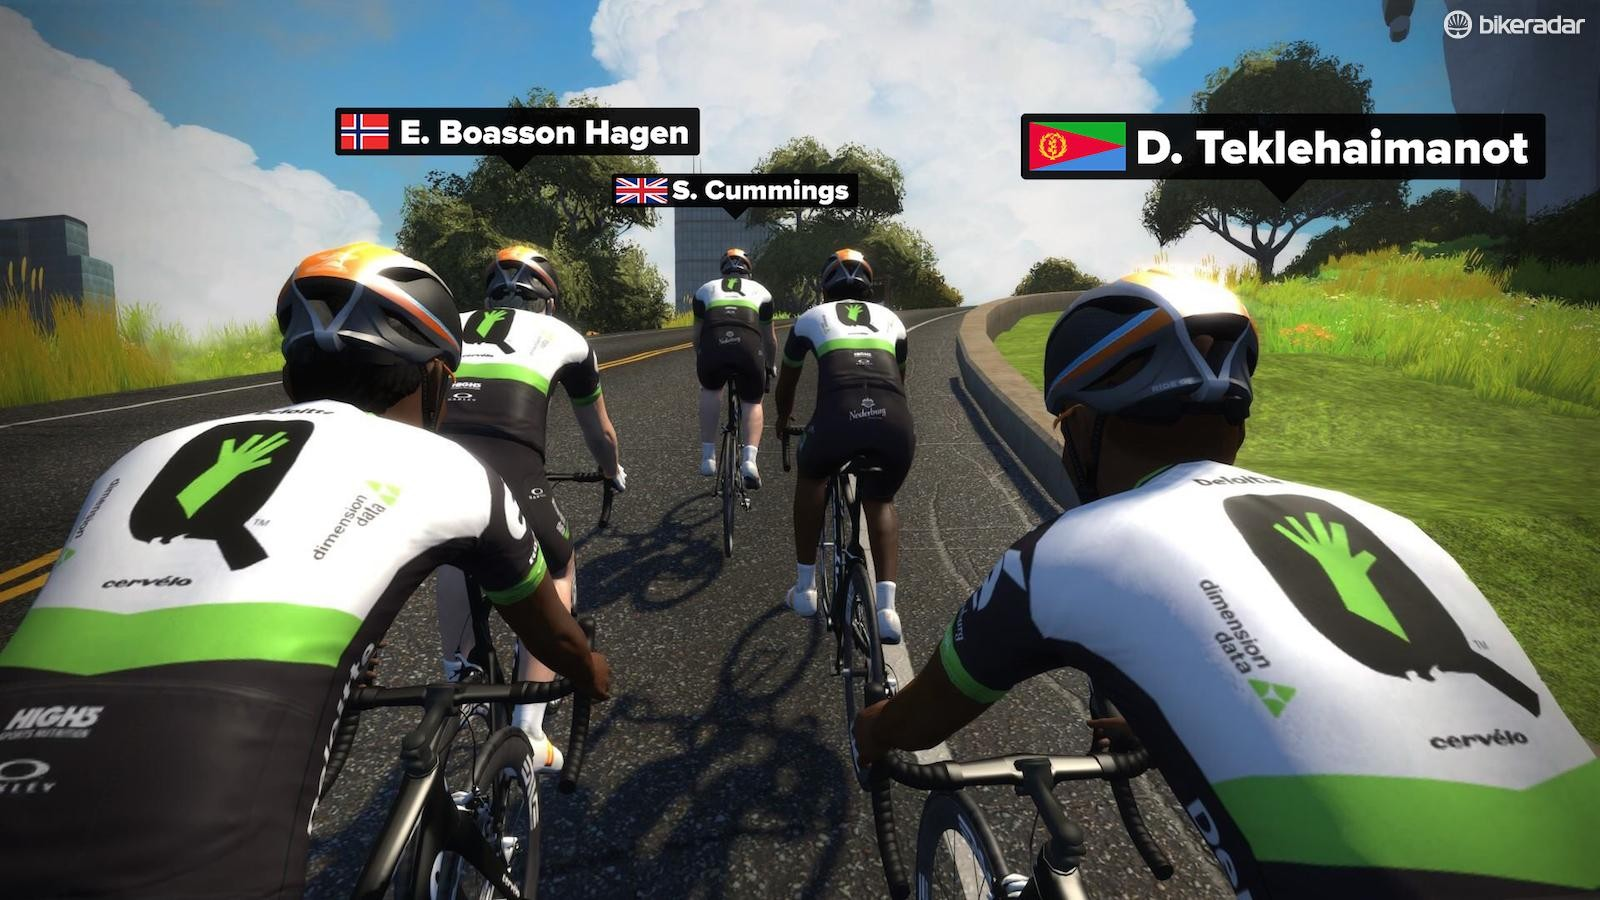 Team Dimension Data professional riders use the platform in conjunction with their traditional training methods